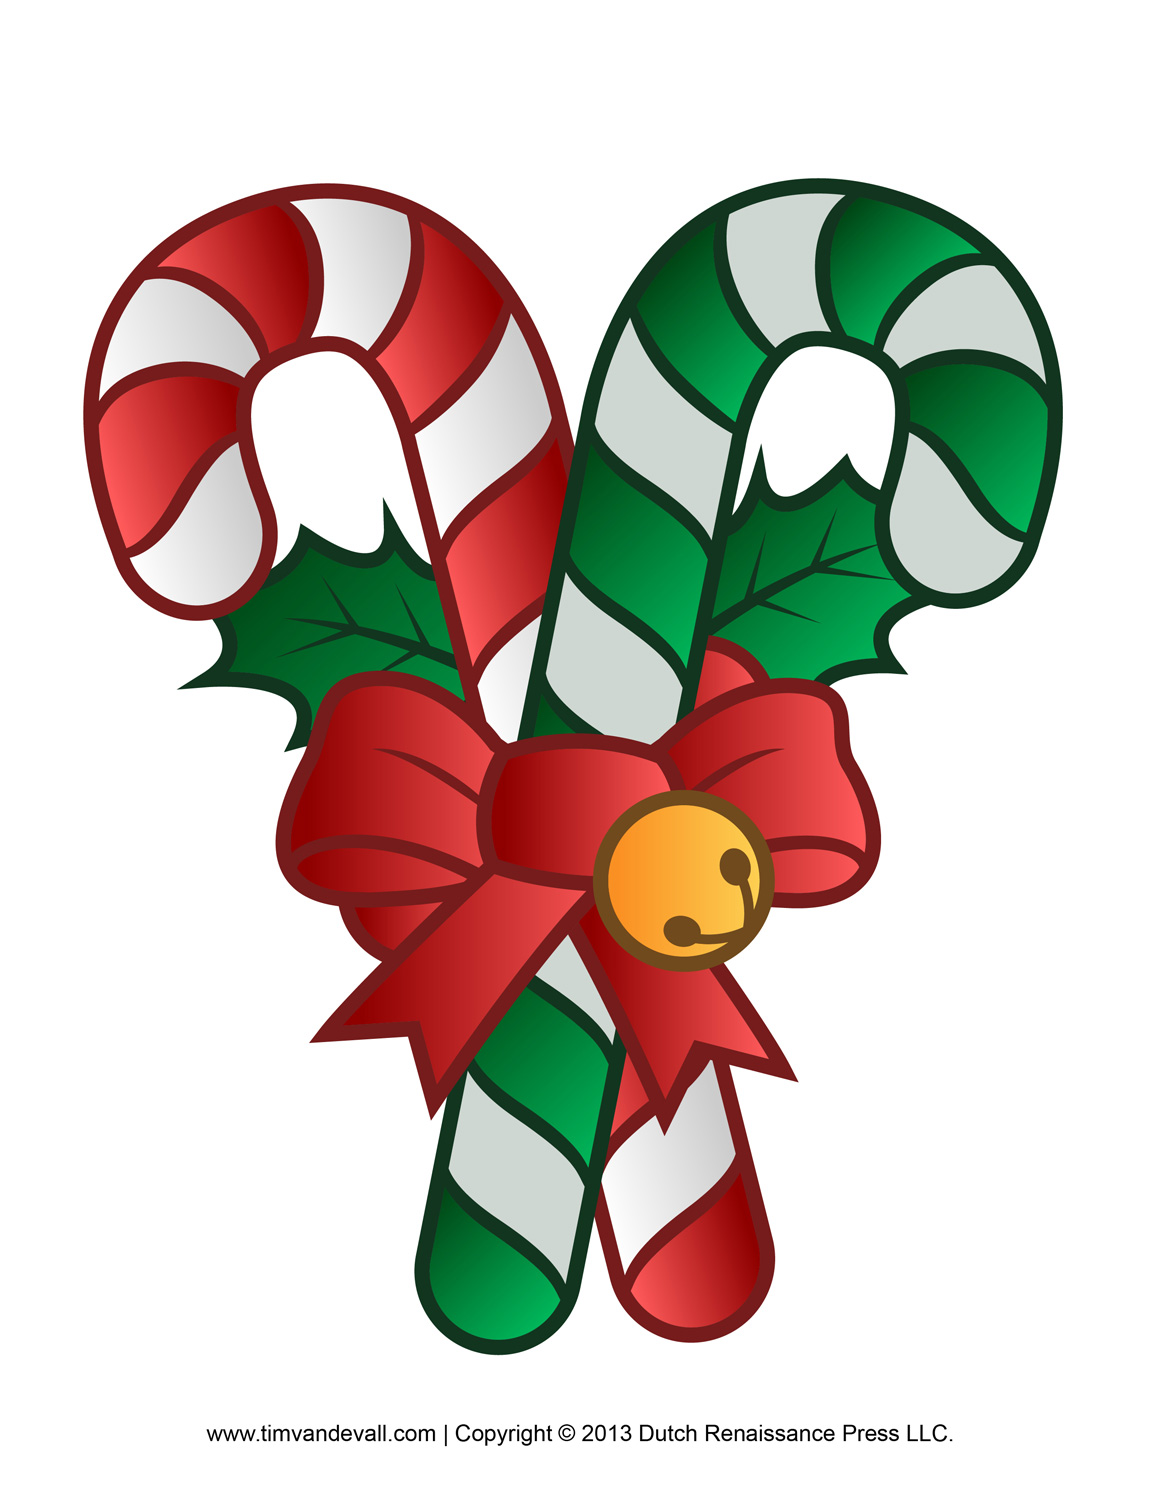 808 Candy Cane free clipart.